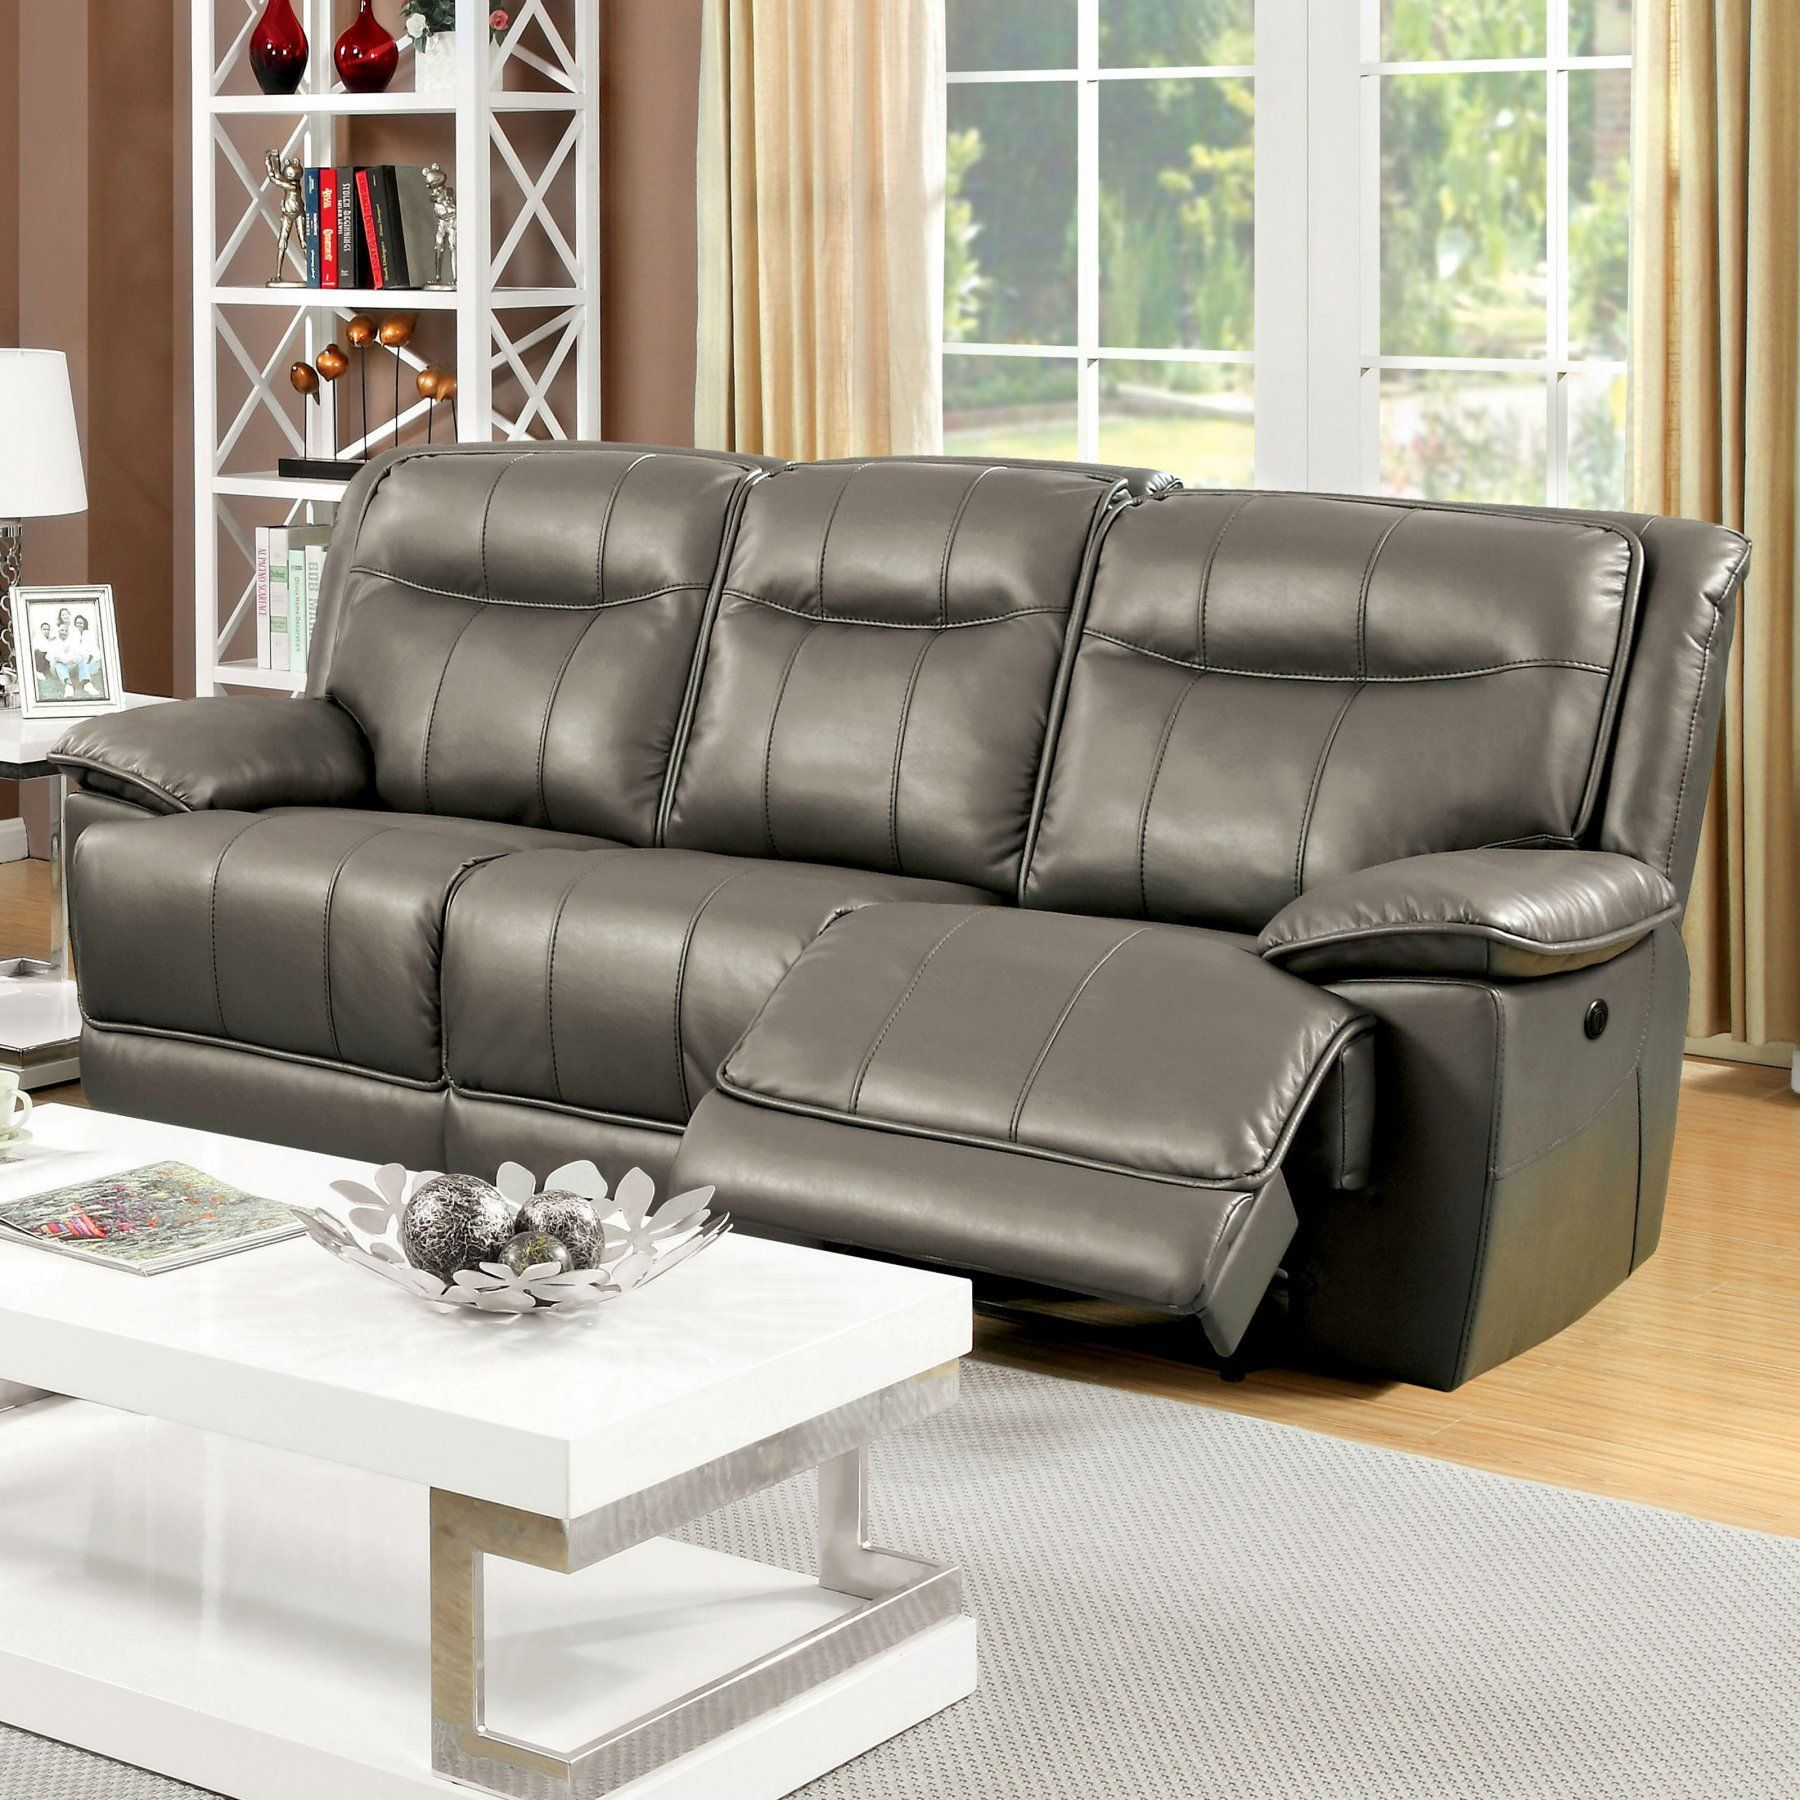 Furniture of america varic leatherette reclining sofa idfbr